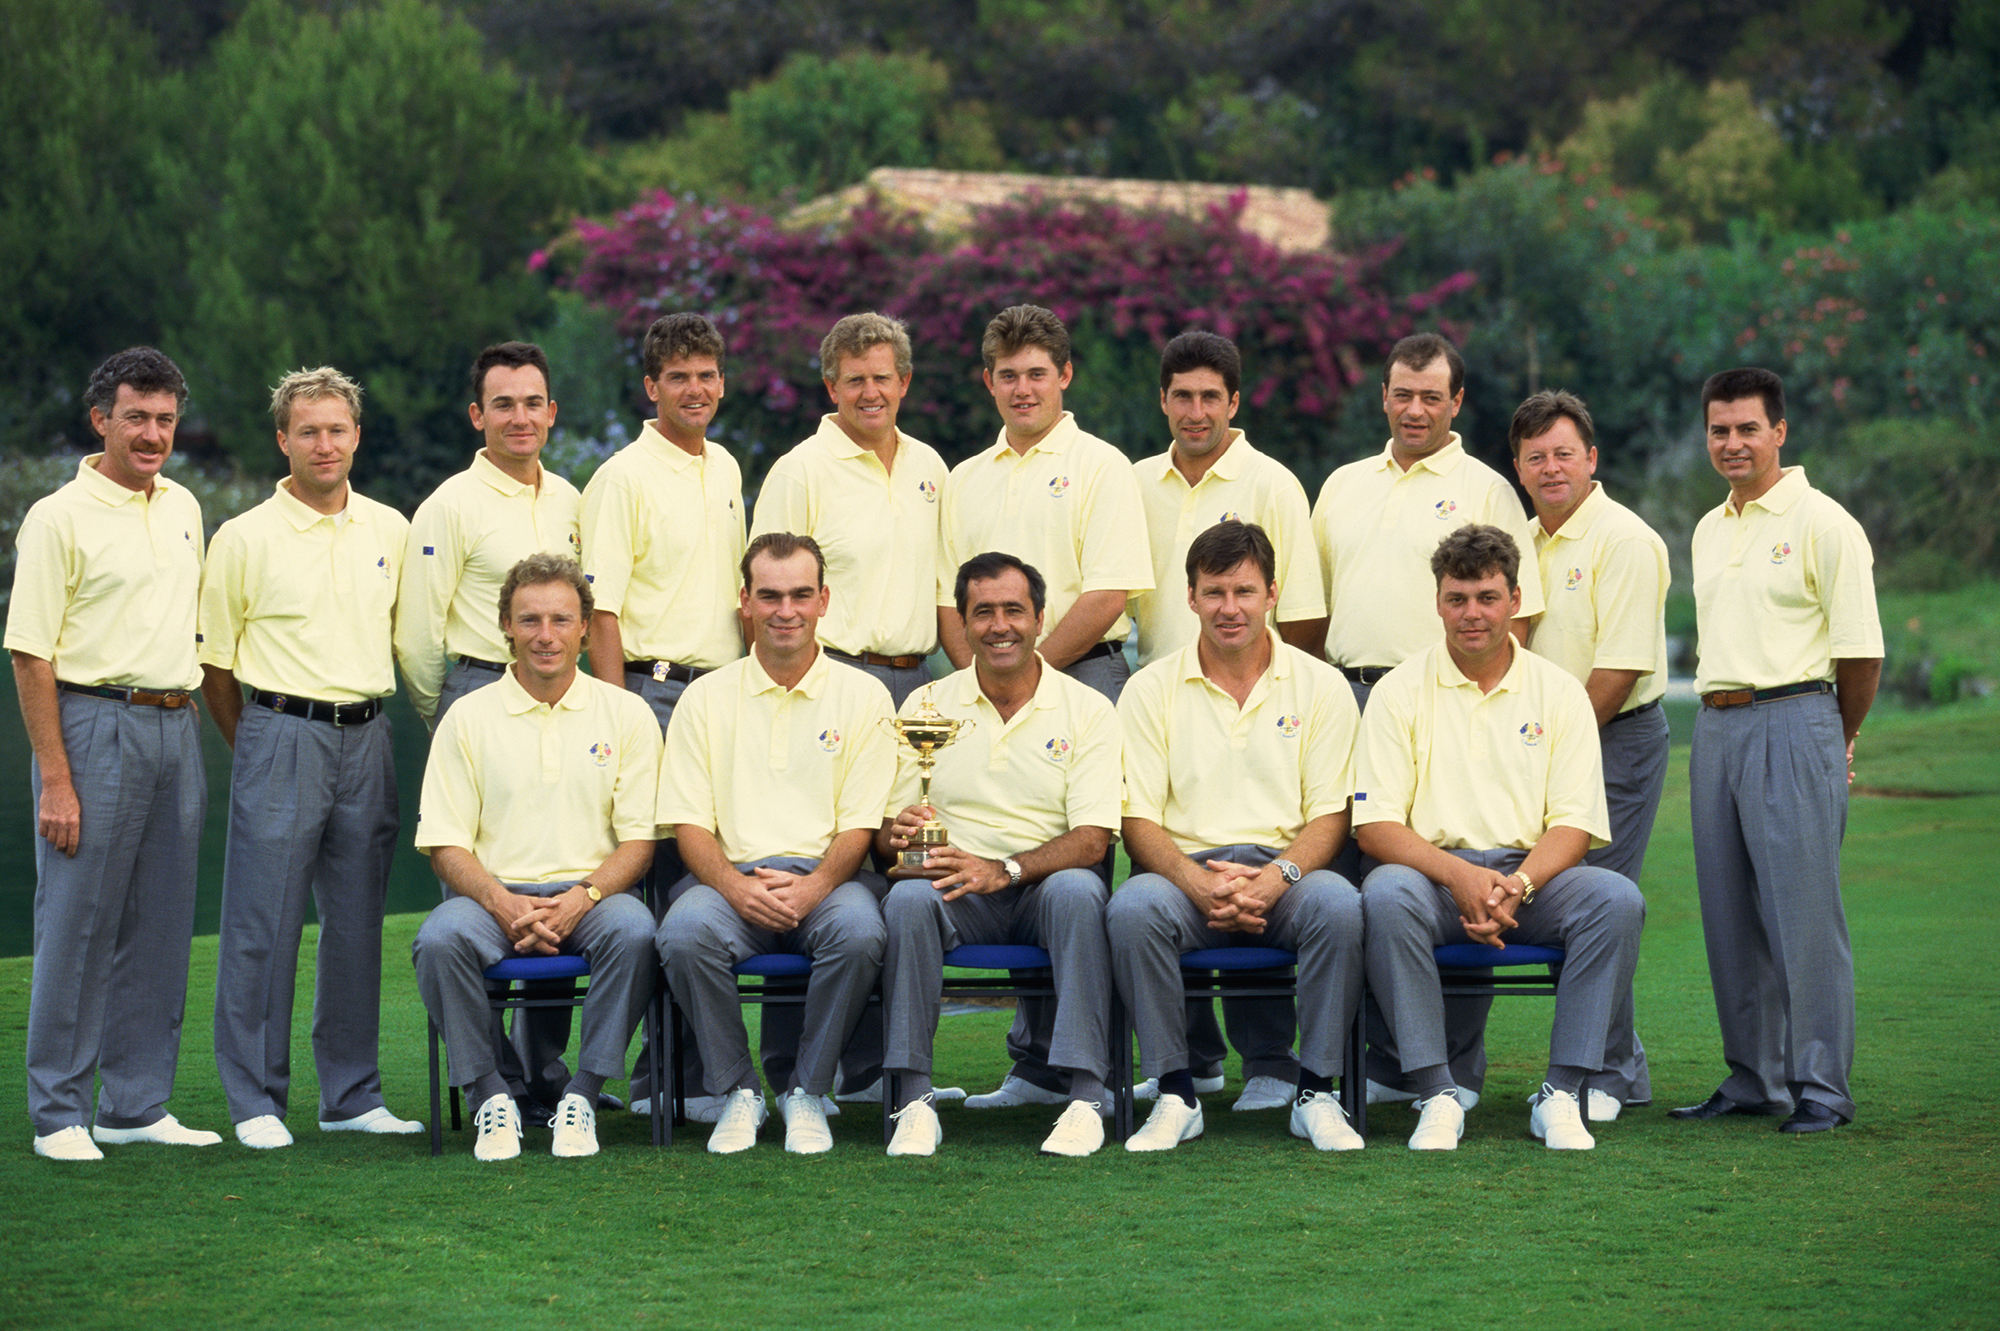 Clarke (bottom right) played his way onto the 1997 European Ryder Cup led by Seve Ballesteros. Europe won the match 14.5-13.5 at Valderrama, with Clarke earning a win in the Saturday morning fourballs alongside Colin Montgomerie (Photo: Getty Images)